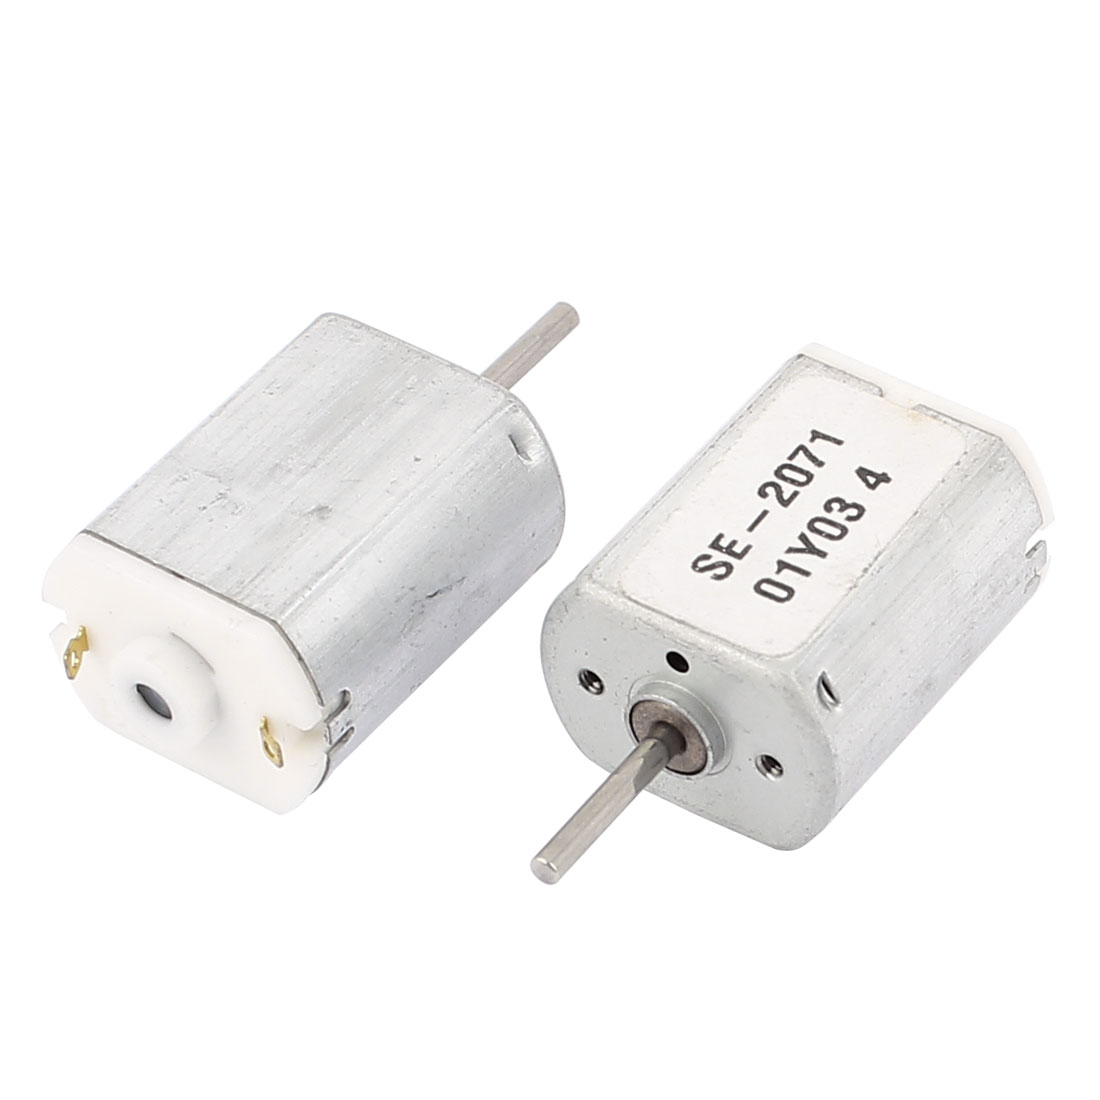 2 Pcs DC 1.5-4.5V 18000RPM High Torque Magnetic Micro Motor for RC Plane Ship Car